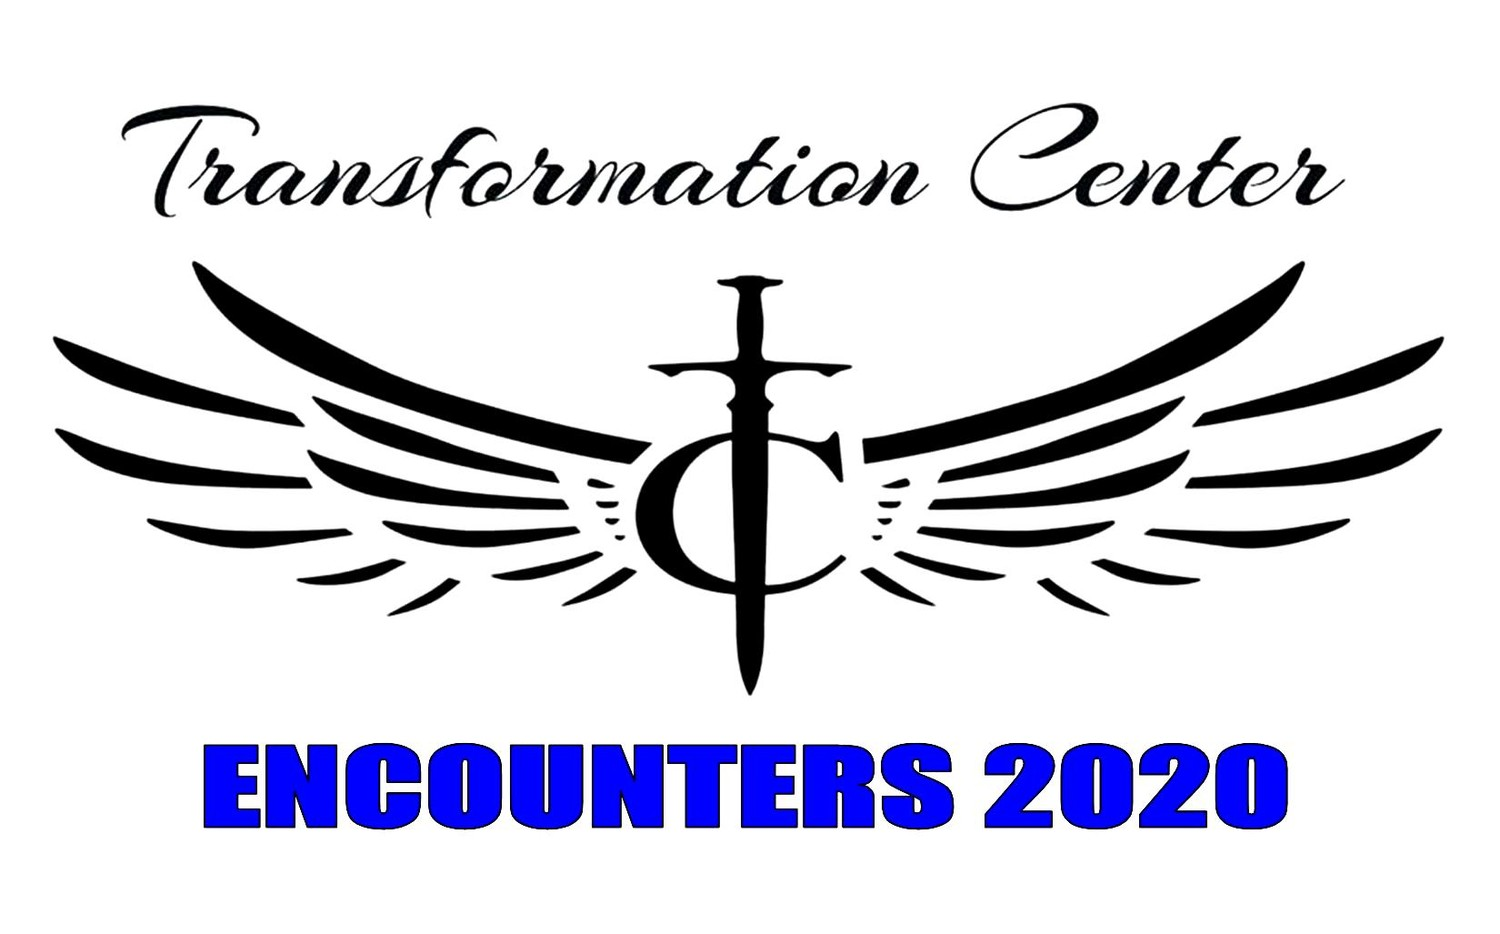 График Инкаунтеров TCCI на 2020 год / Transformation Center Encounters 2020